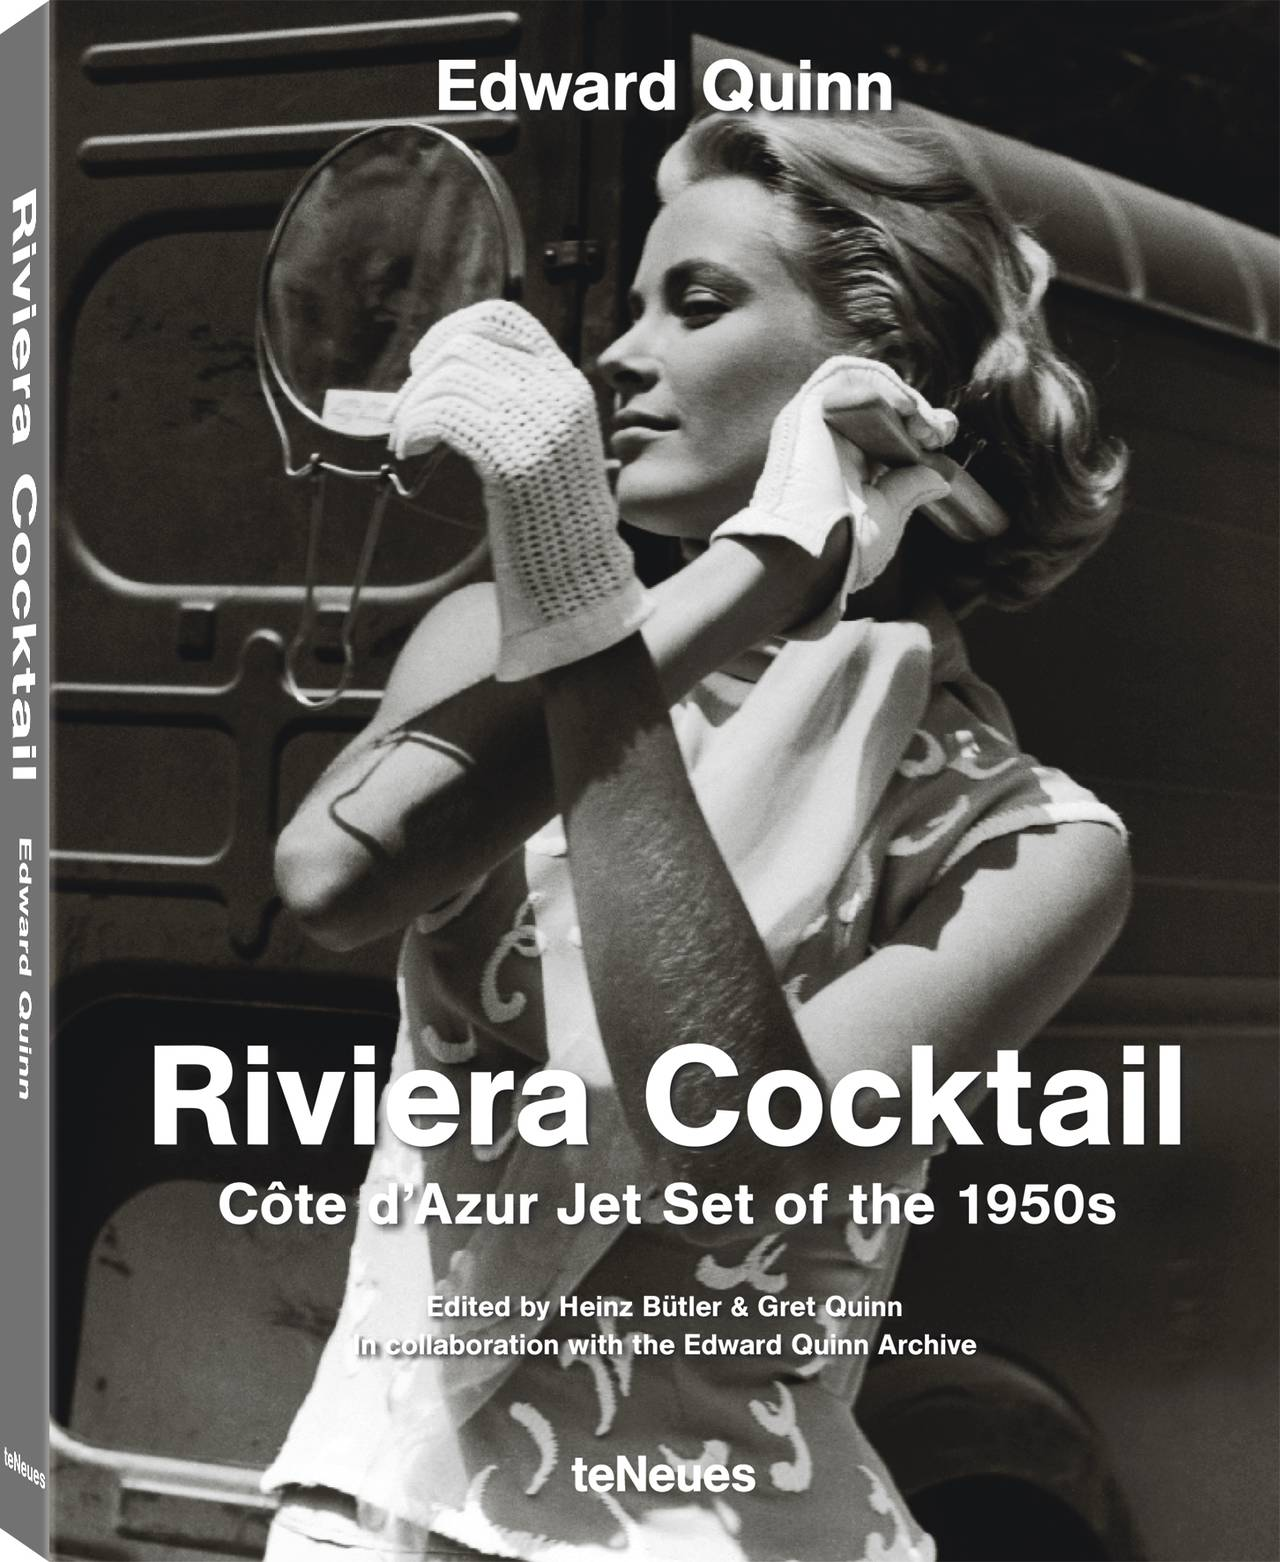 © Riviera Cocktail, Edward Quinn - Côte d'Azur Jet Set of the 1950s, Small Format Edition, published by teNeues, www.teneues.com, Photo © edwardquinn.com